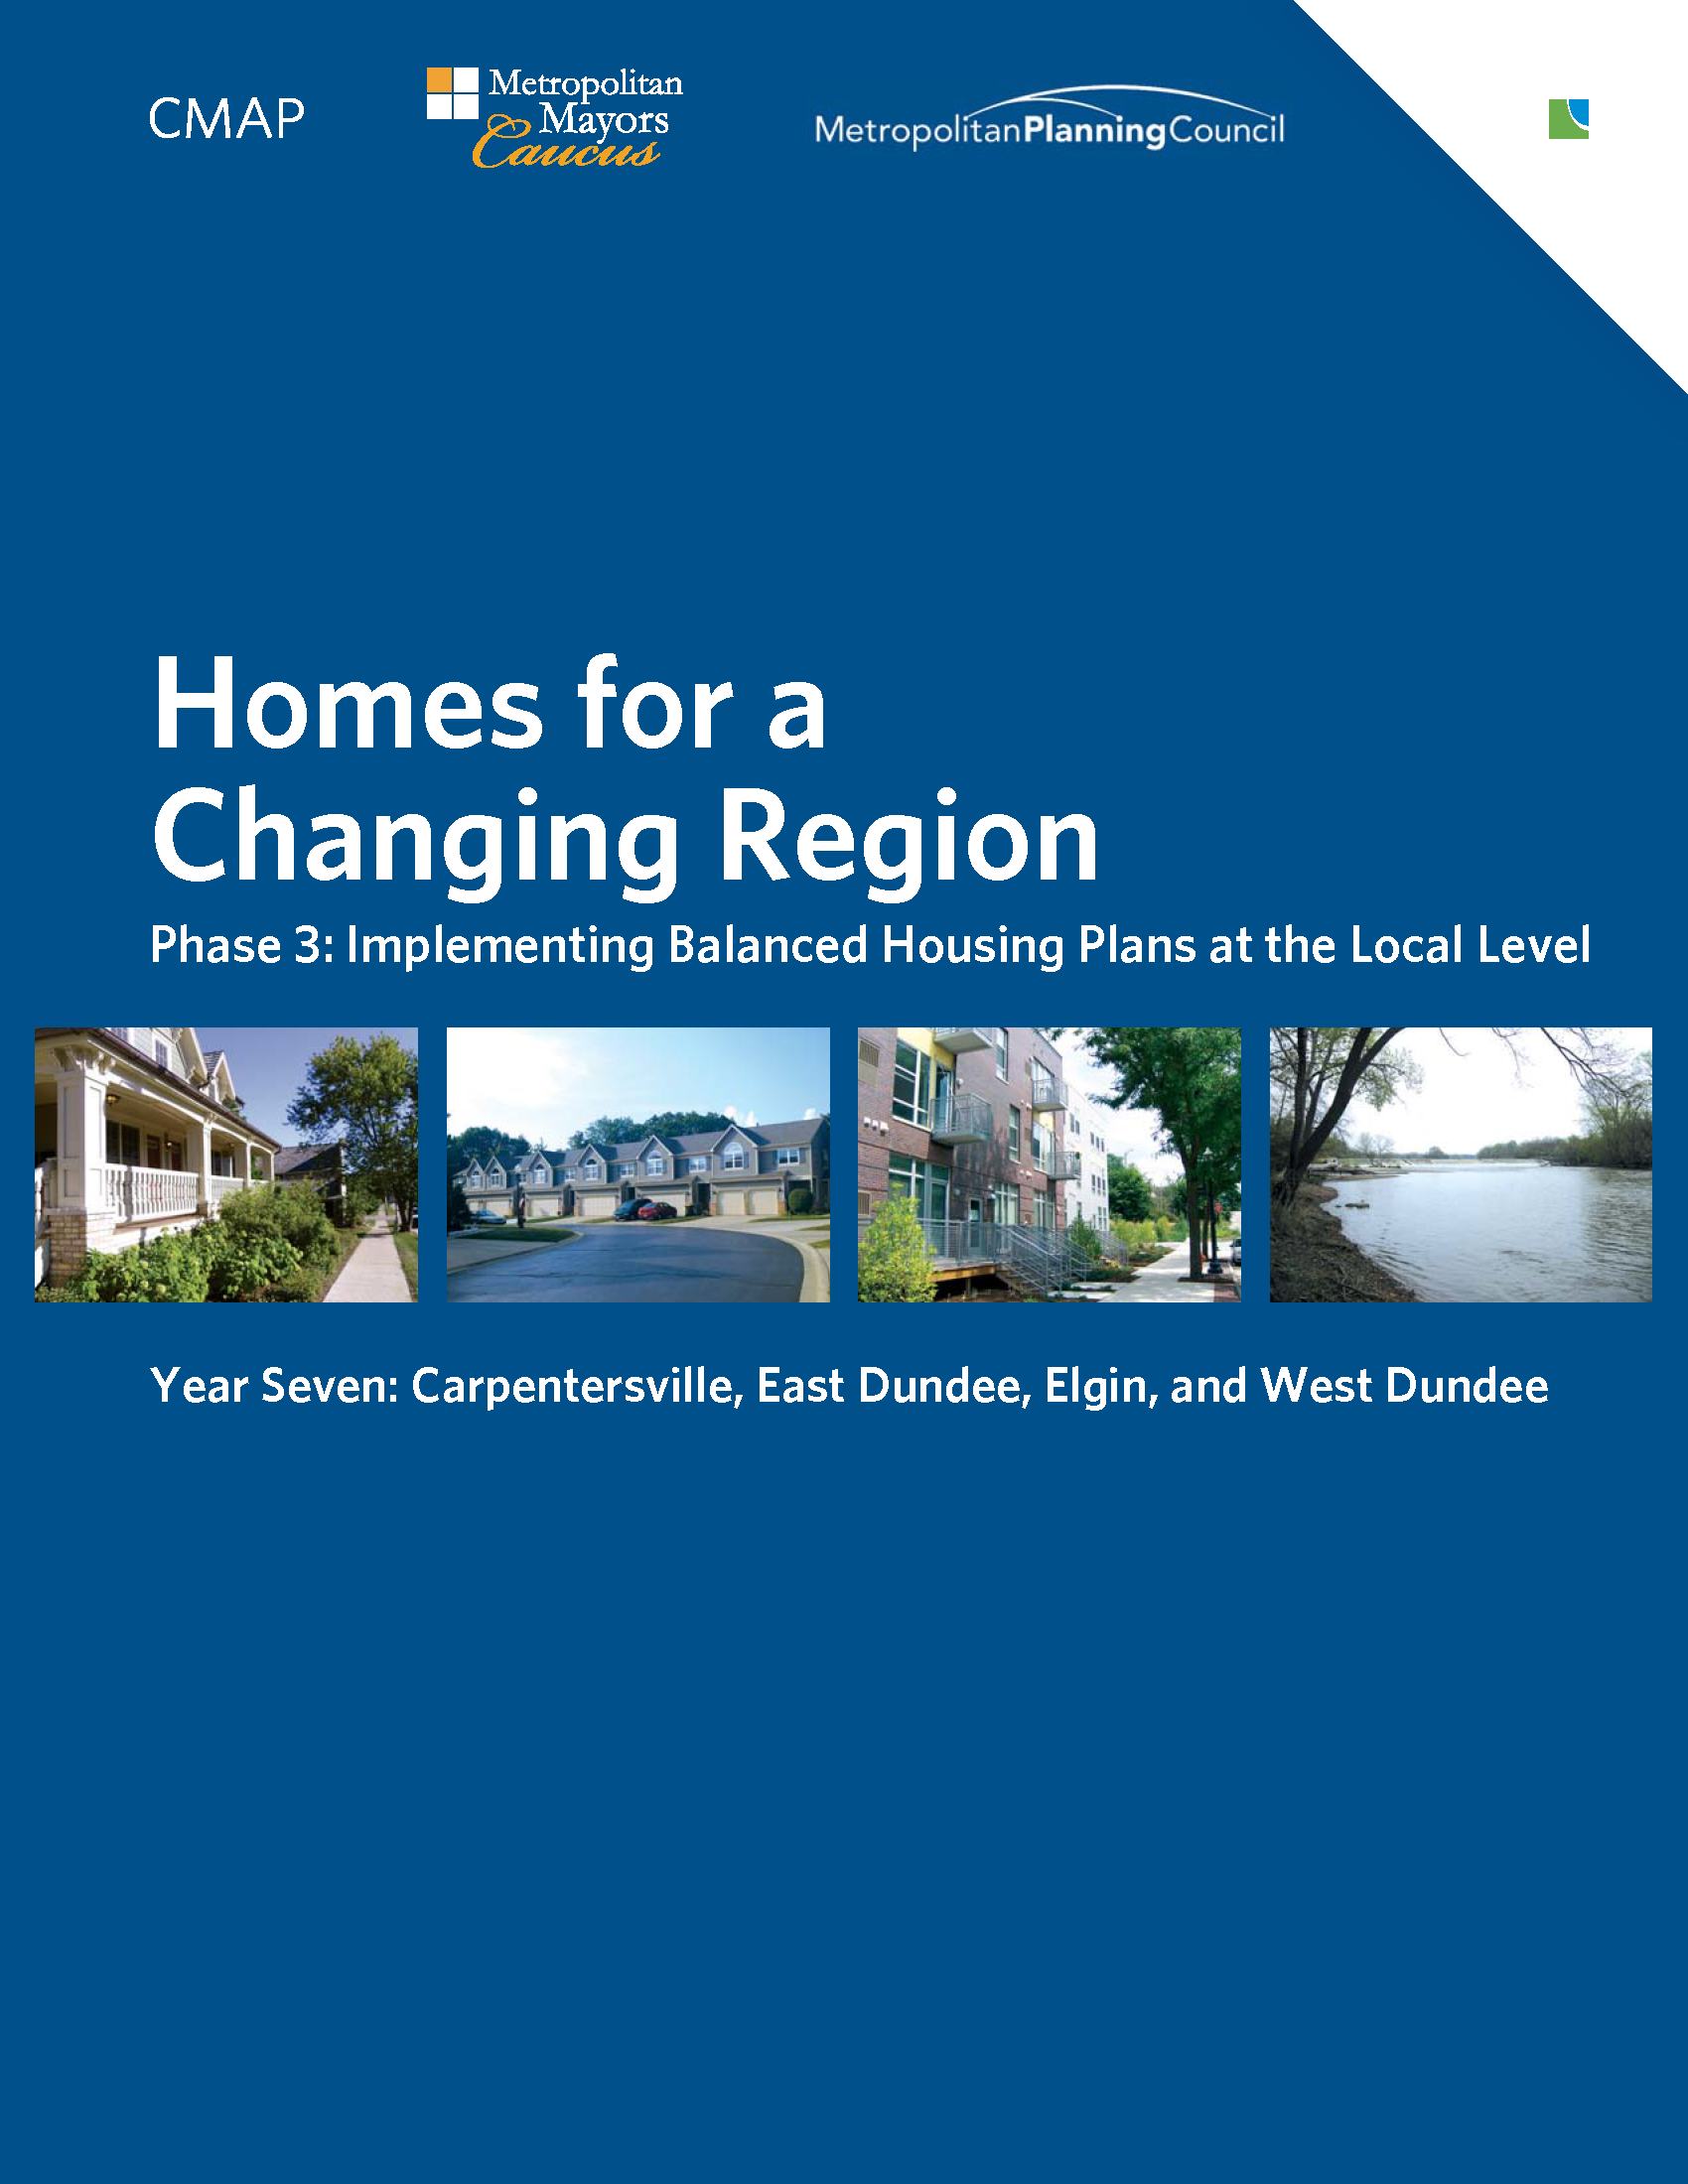 FY14-0016 HOMES FOR A CHANGING REGION 2014 cover.png